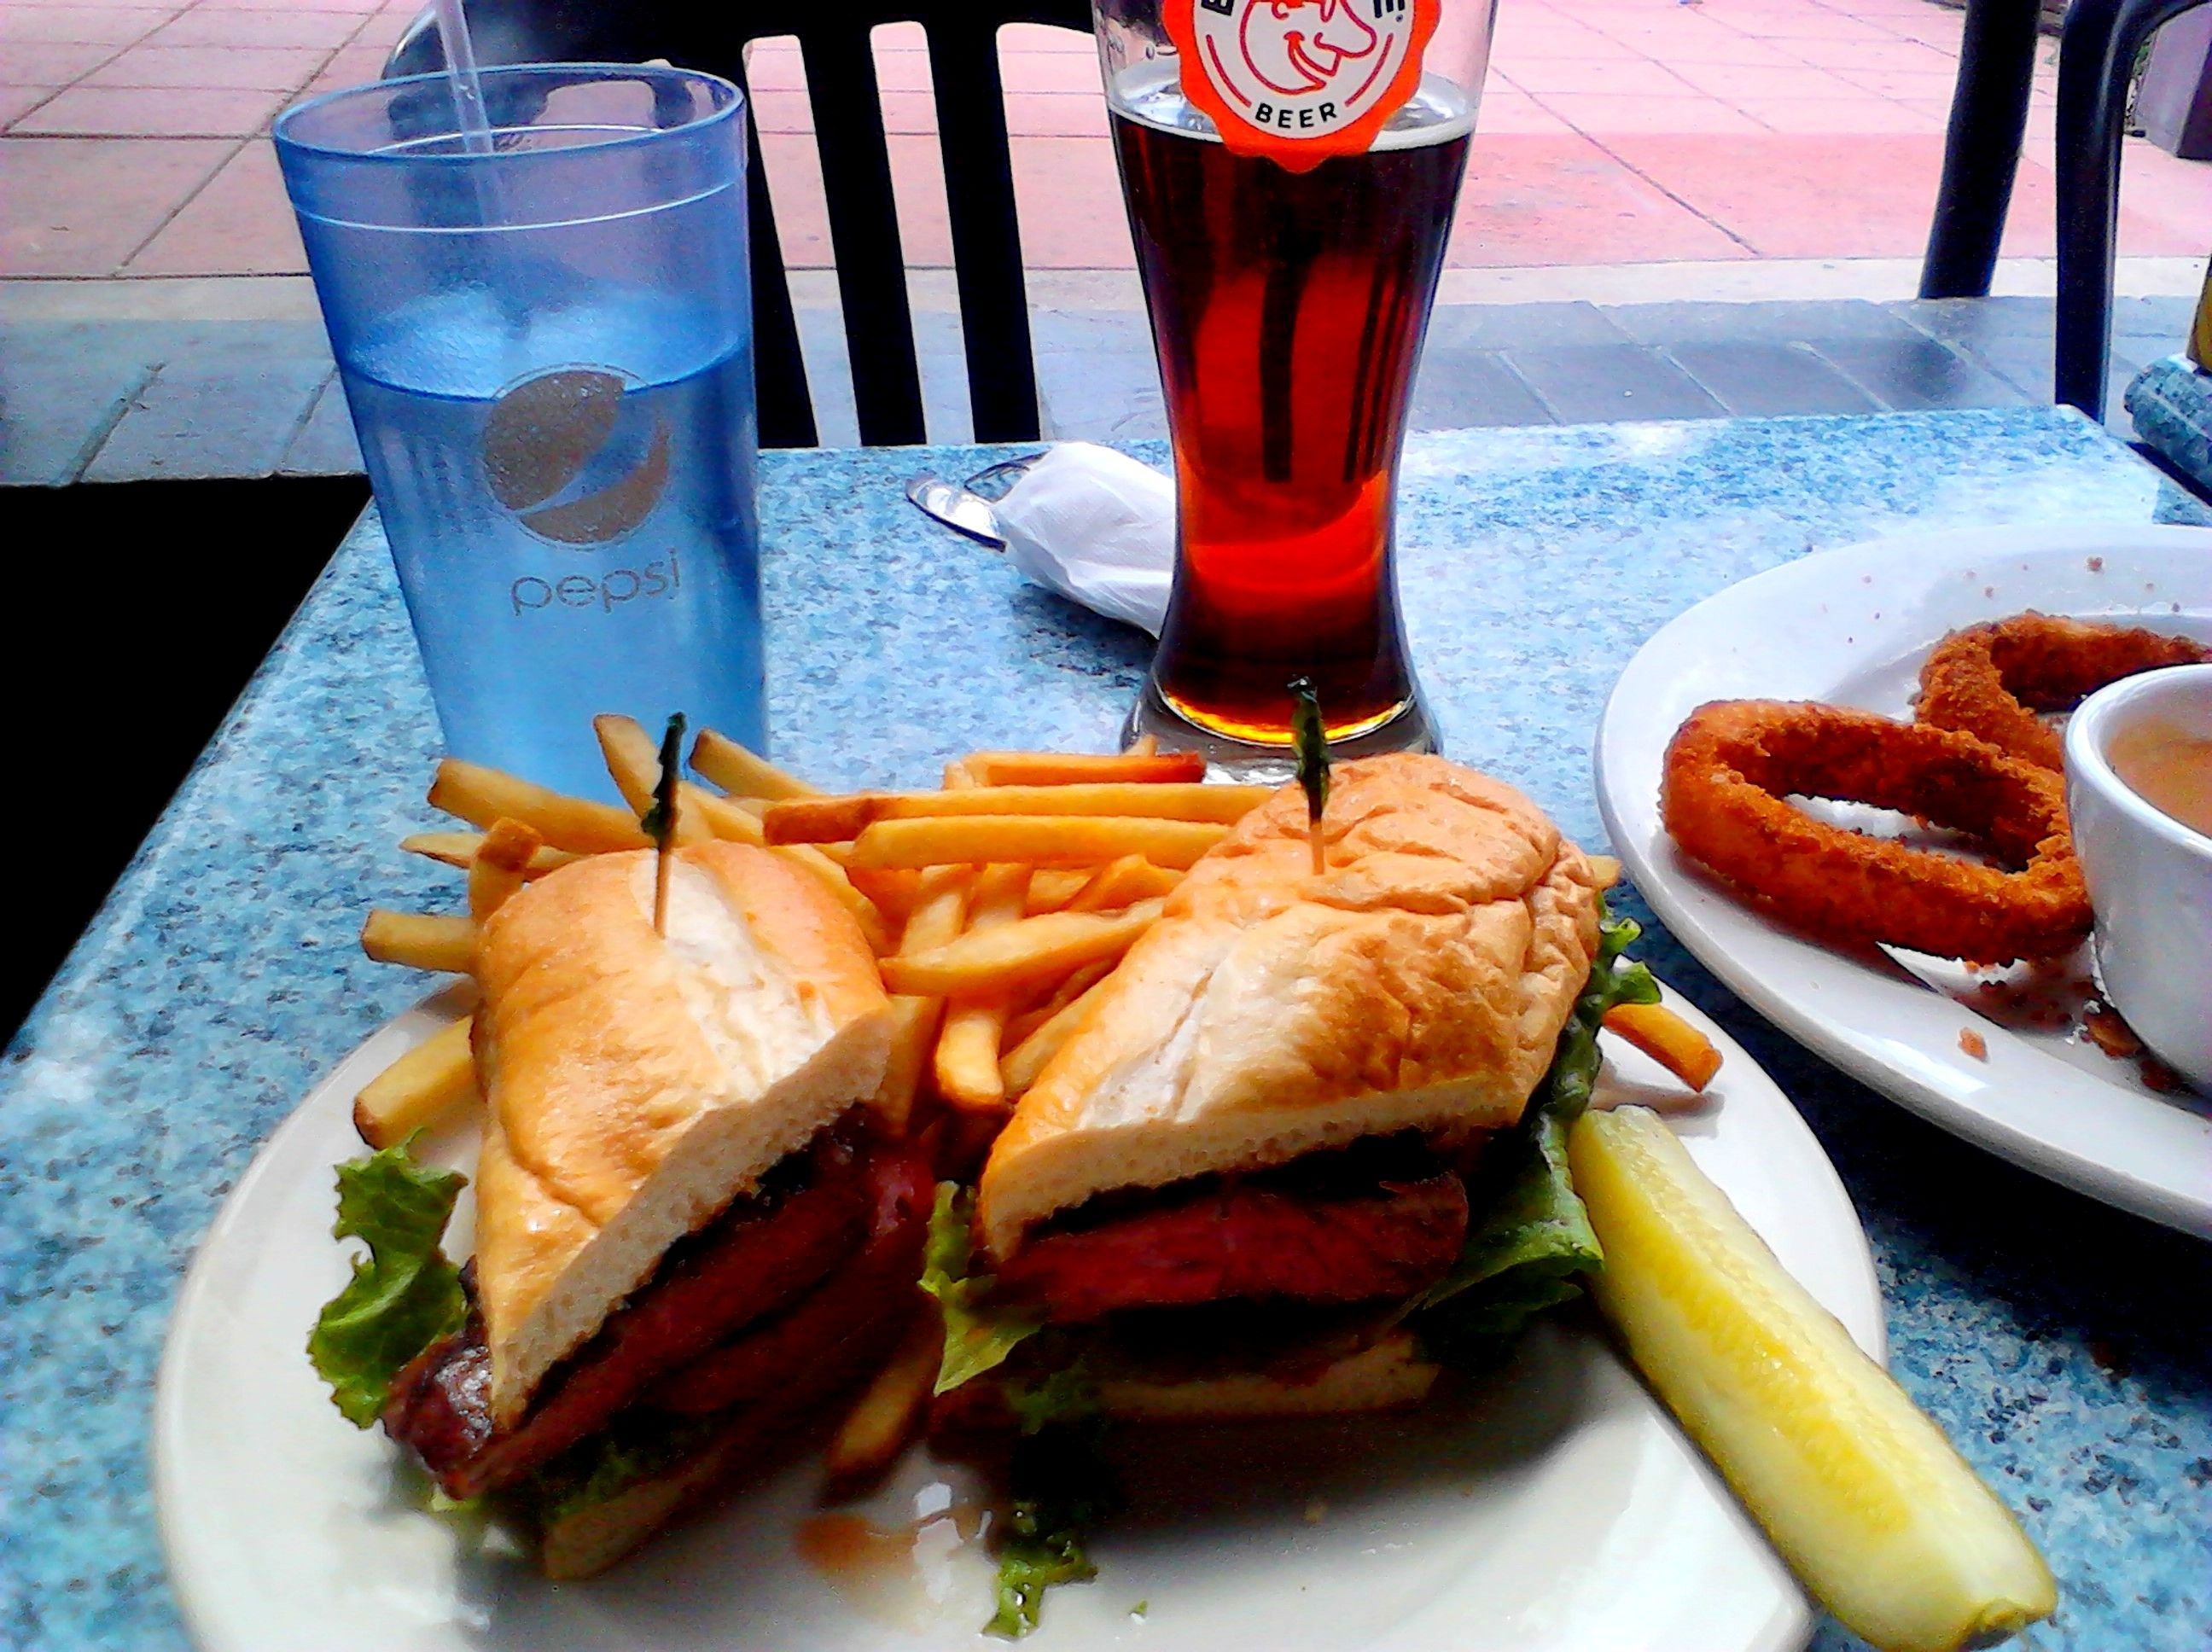 Lunch - Governor's Park NY Steak Sandwich w/ a Big Nose Red Ale